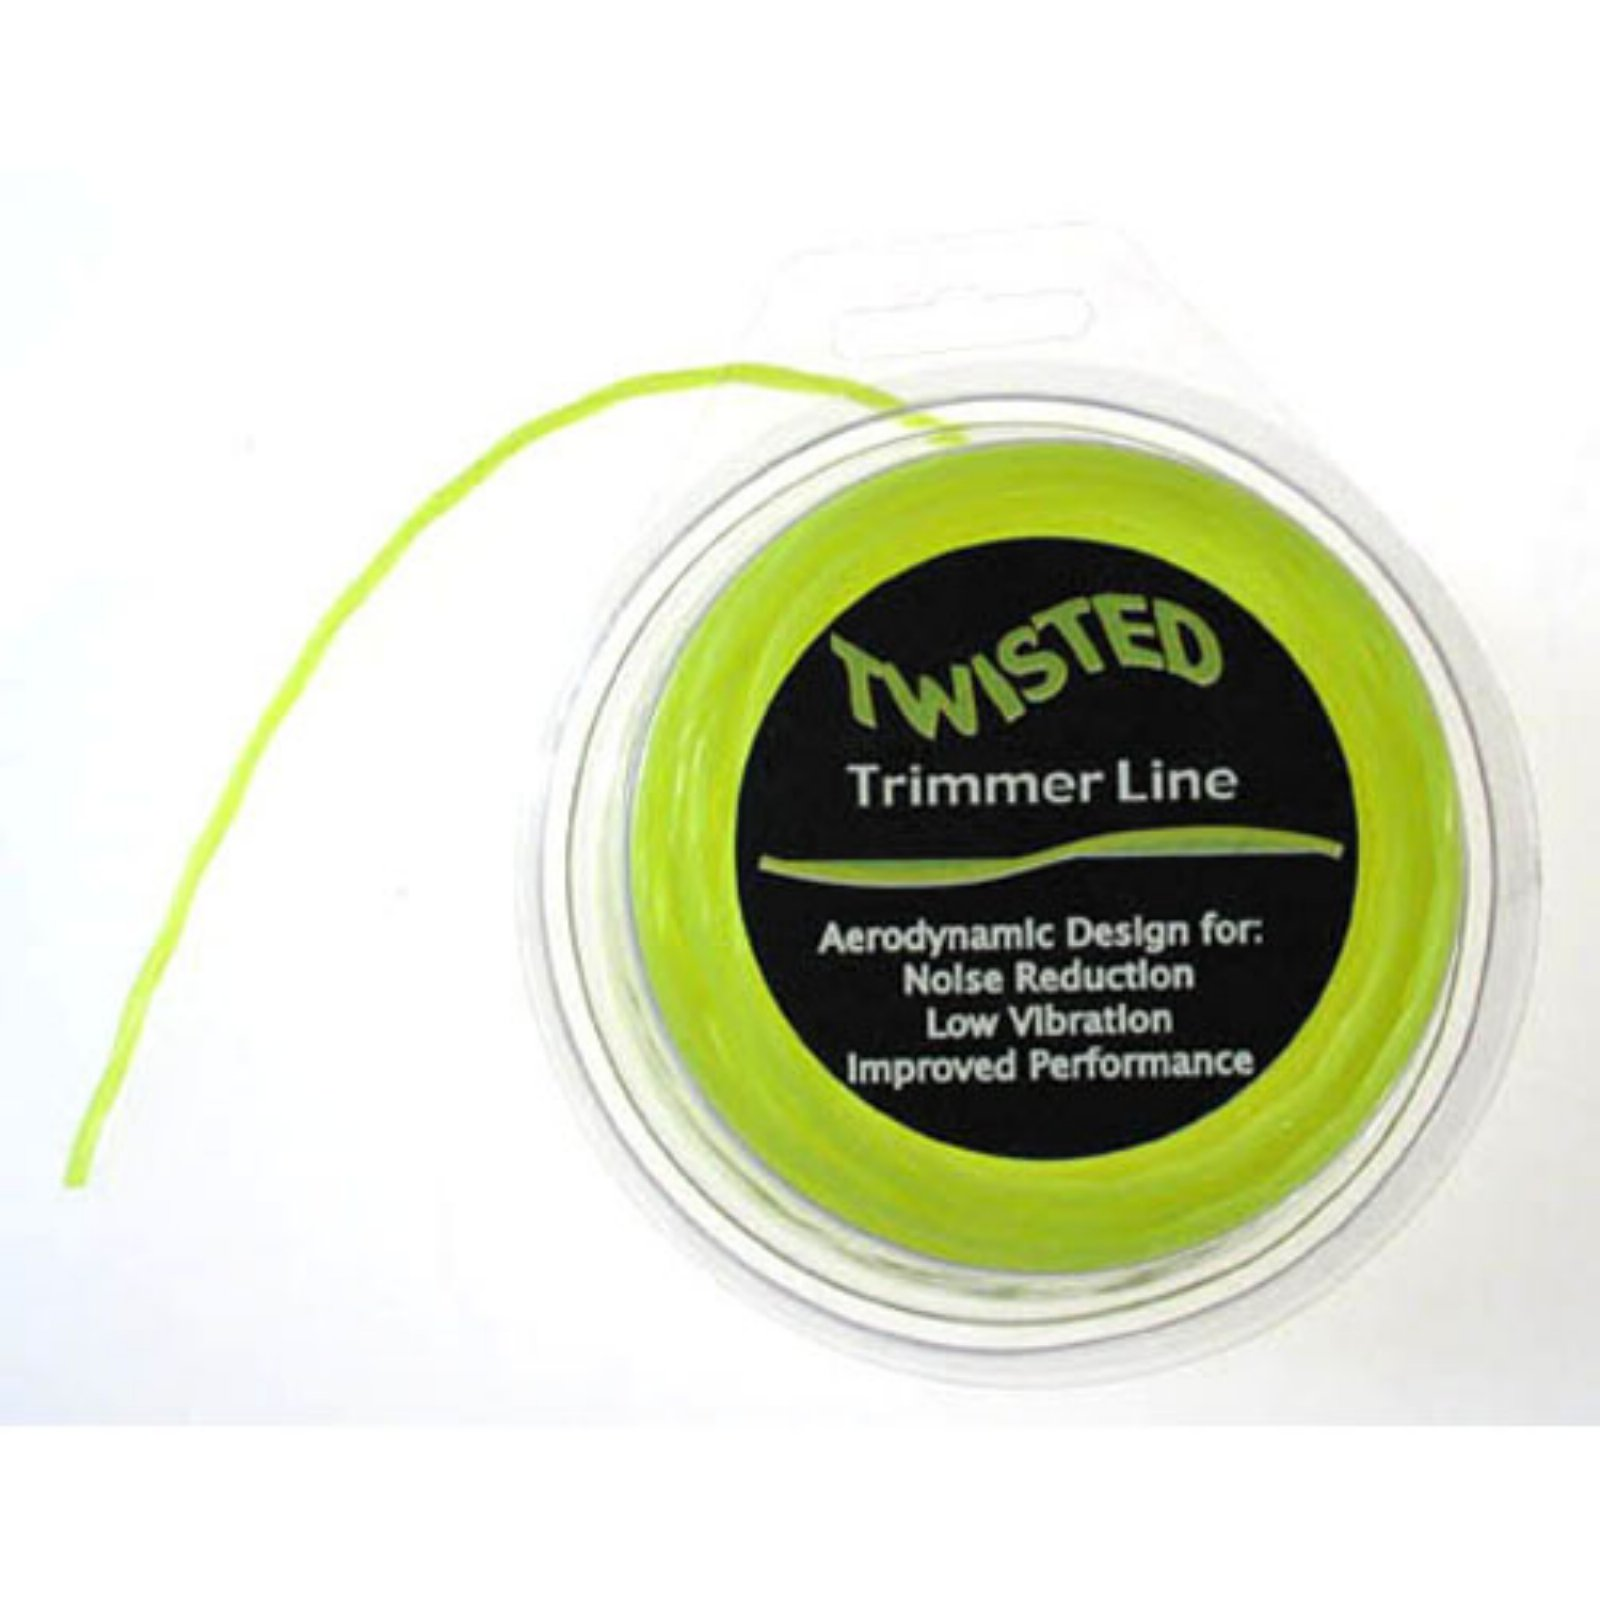 Maxpower 338807 .080 in x 142' Twisted Trimmer Line